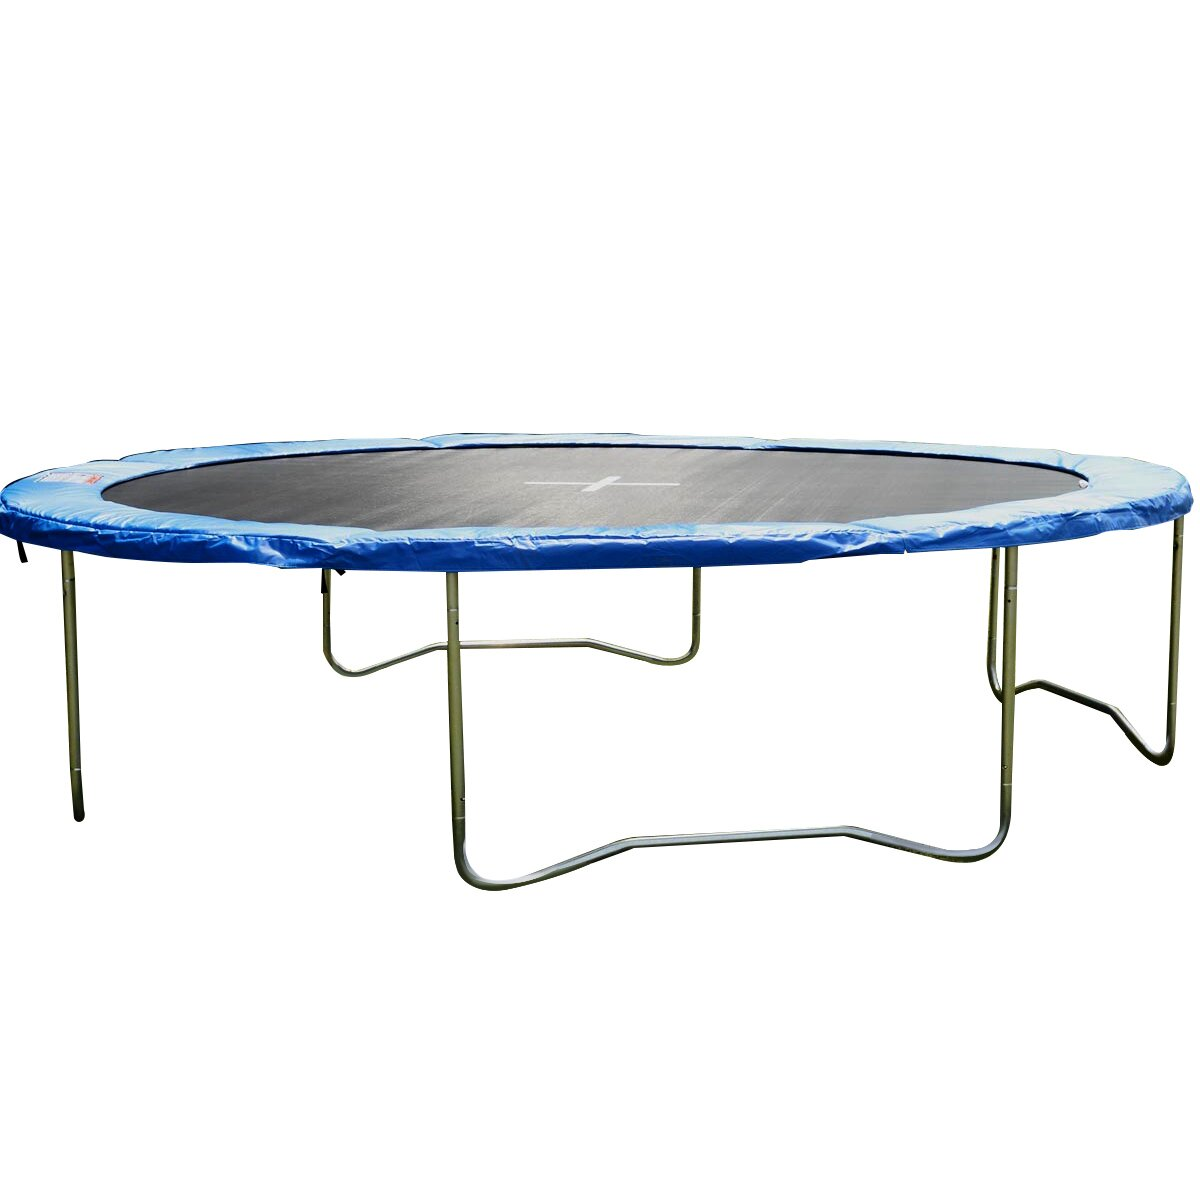 Gymax Blue Safety Pad Spring Round Frame Pad Cover Replacement for 12FT Trampoline